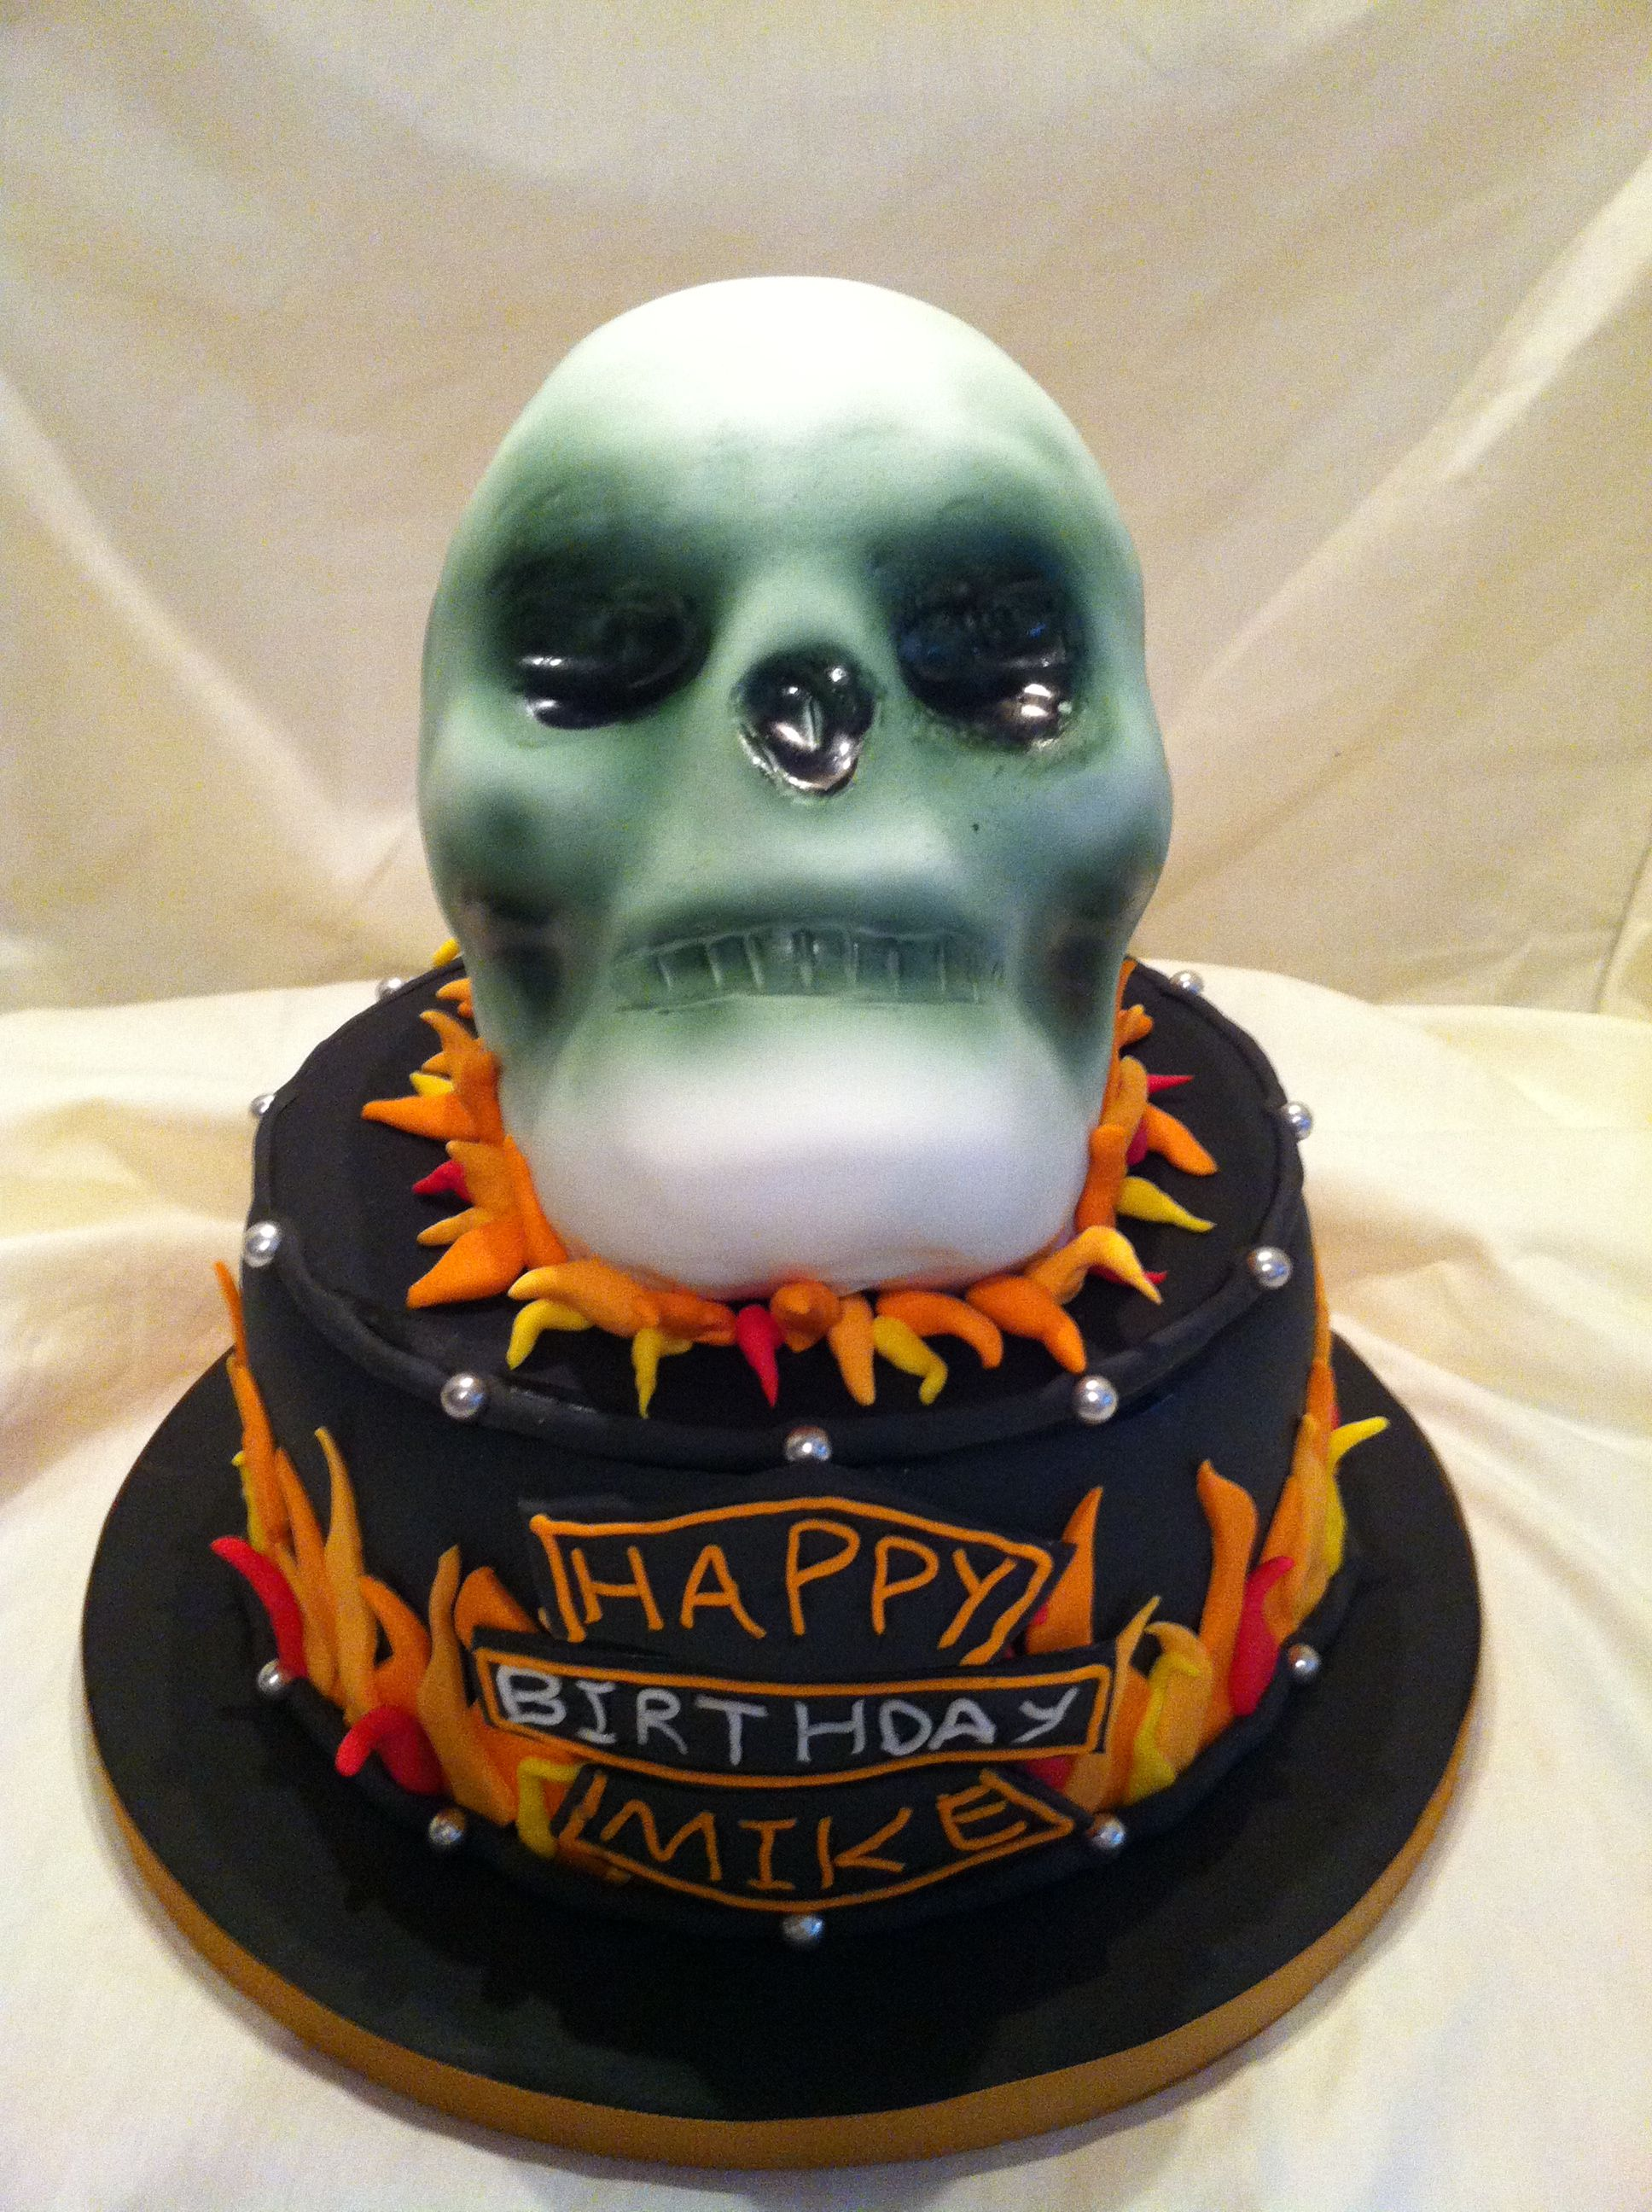 Ghost rider inspired birthday cake for a 60 year old Harley Davidson